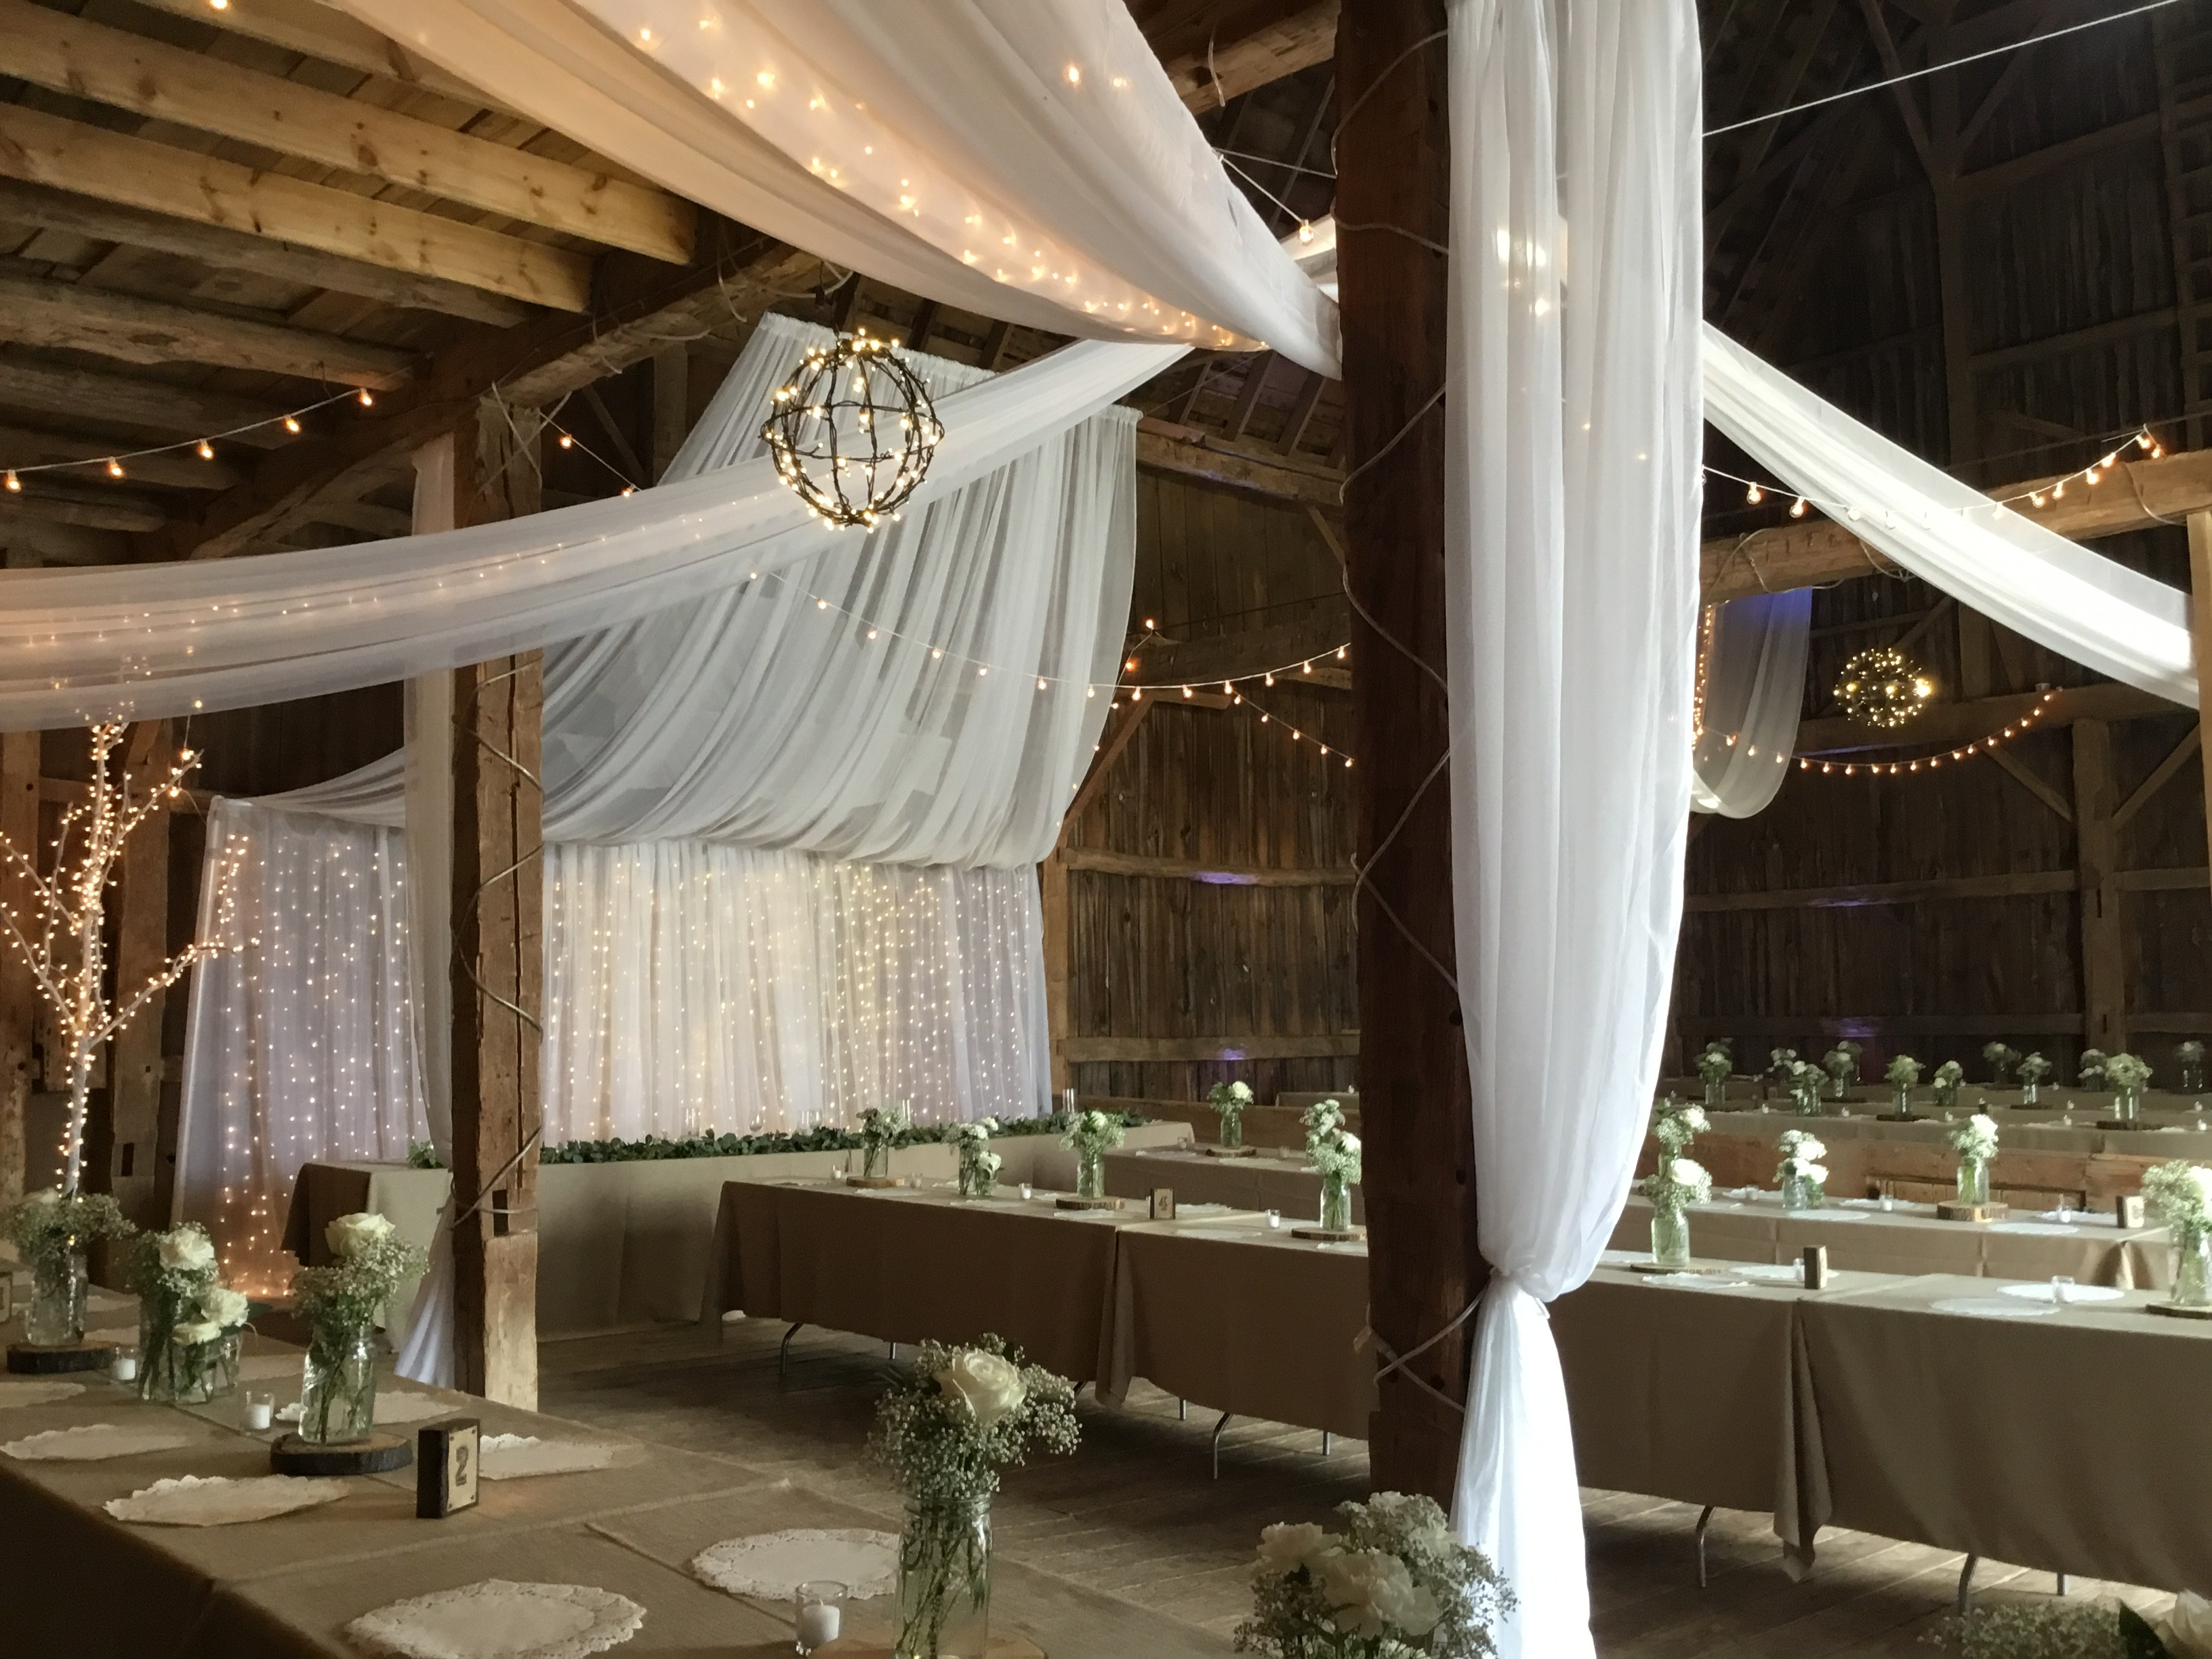 Lighting, Decor & Venue Photo Gallery | Party Pleasers Services